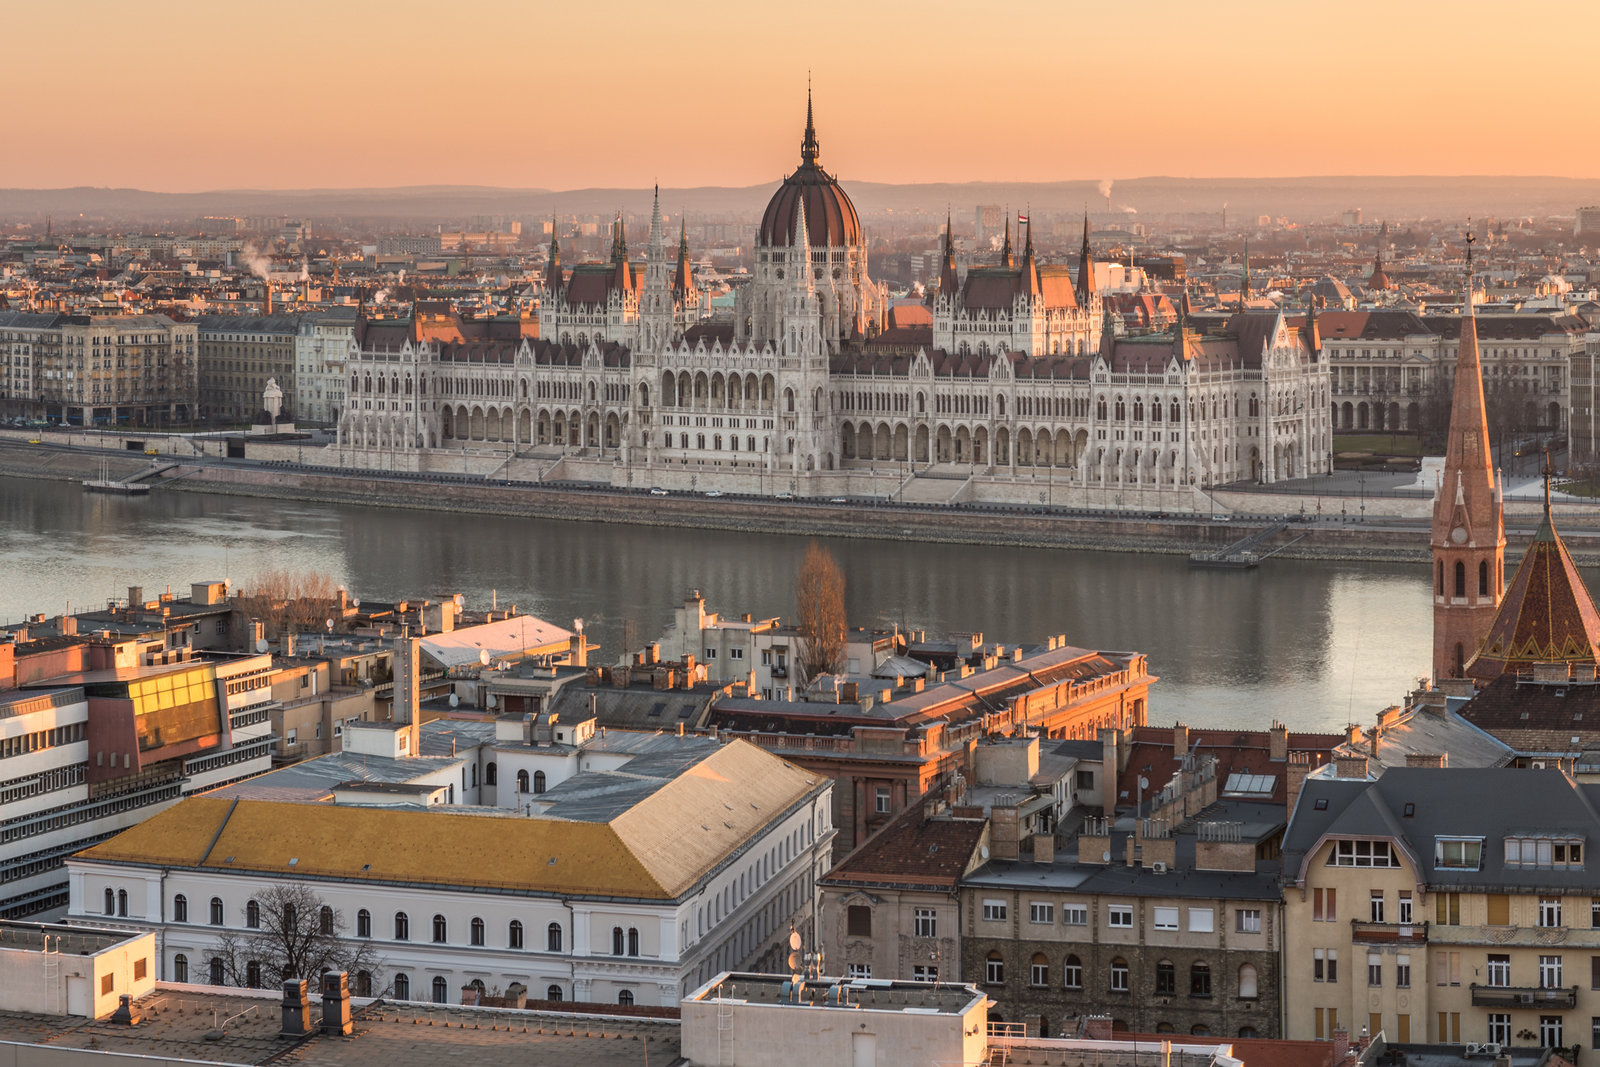 Discover what to do in Budapest. The best things to do in Budapest on trips to budpatest. From the chain bridge budapest to the budapest Christmas market. Wide Panorama of Budapest with Hungarian Parliament and Danube River at Sunrise